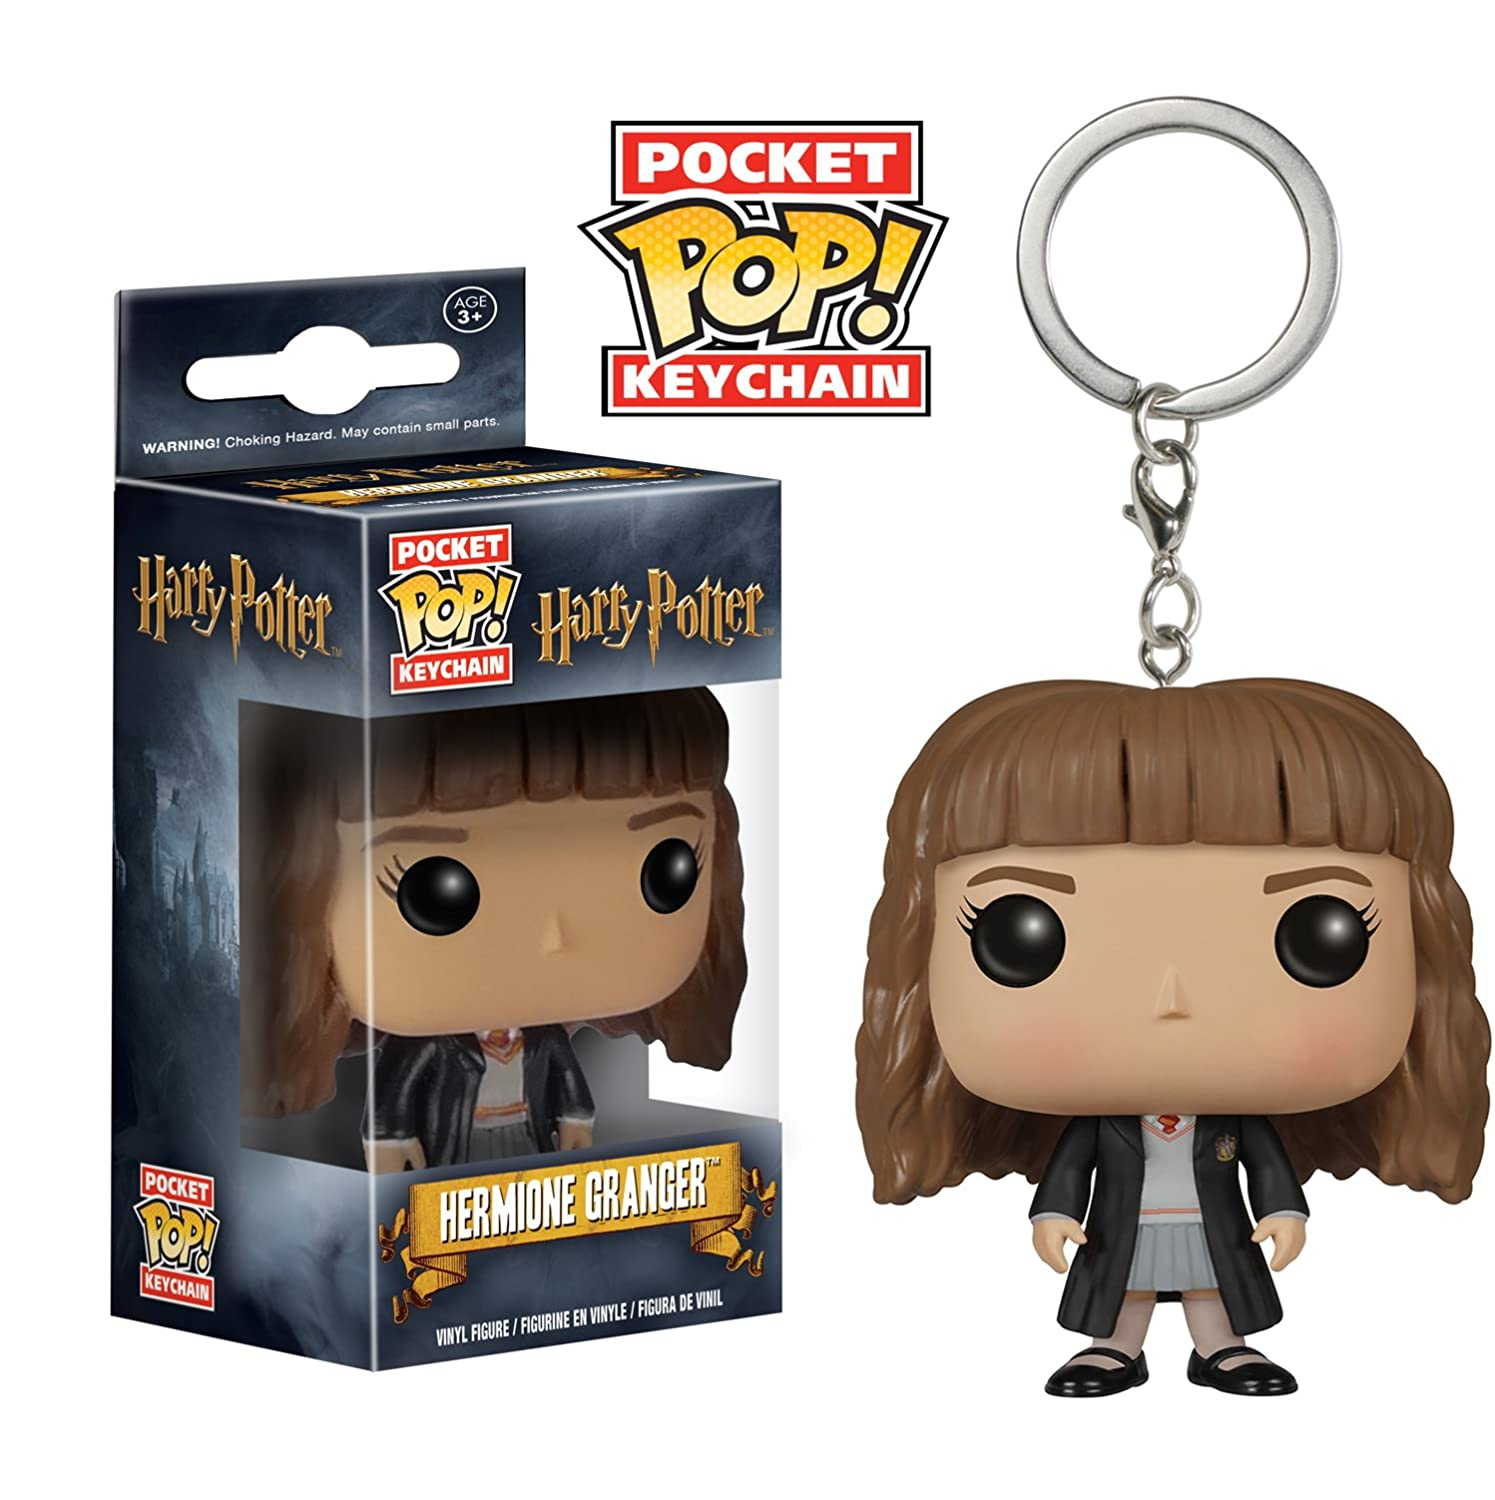 Pocket POP! Keychain - Harry Potter: Hermione Granger